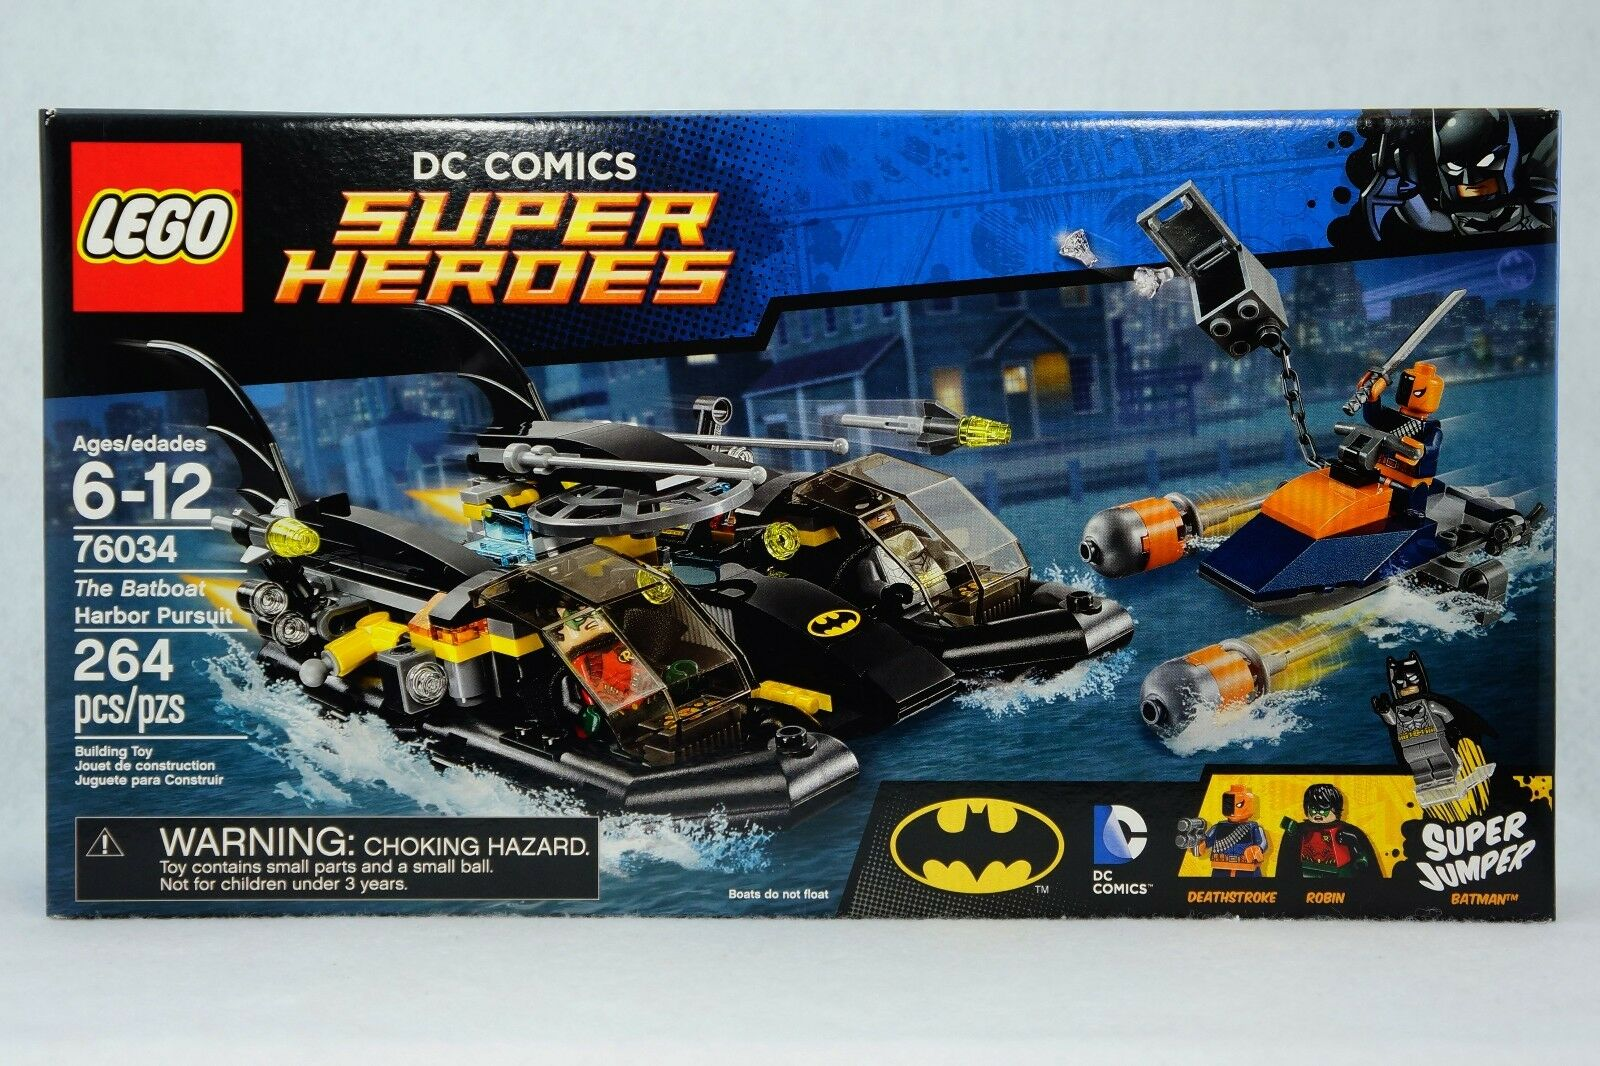 LEGO 76034 Batboat Harbor Pursuit. DC Comic Super Heroes. 264 pcs. NEW SEALED